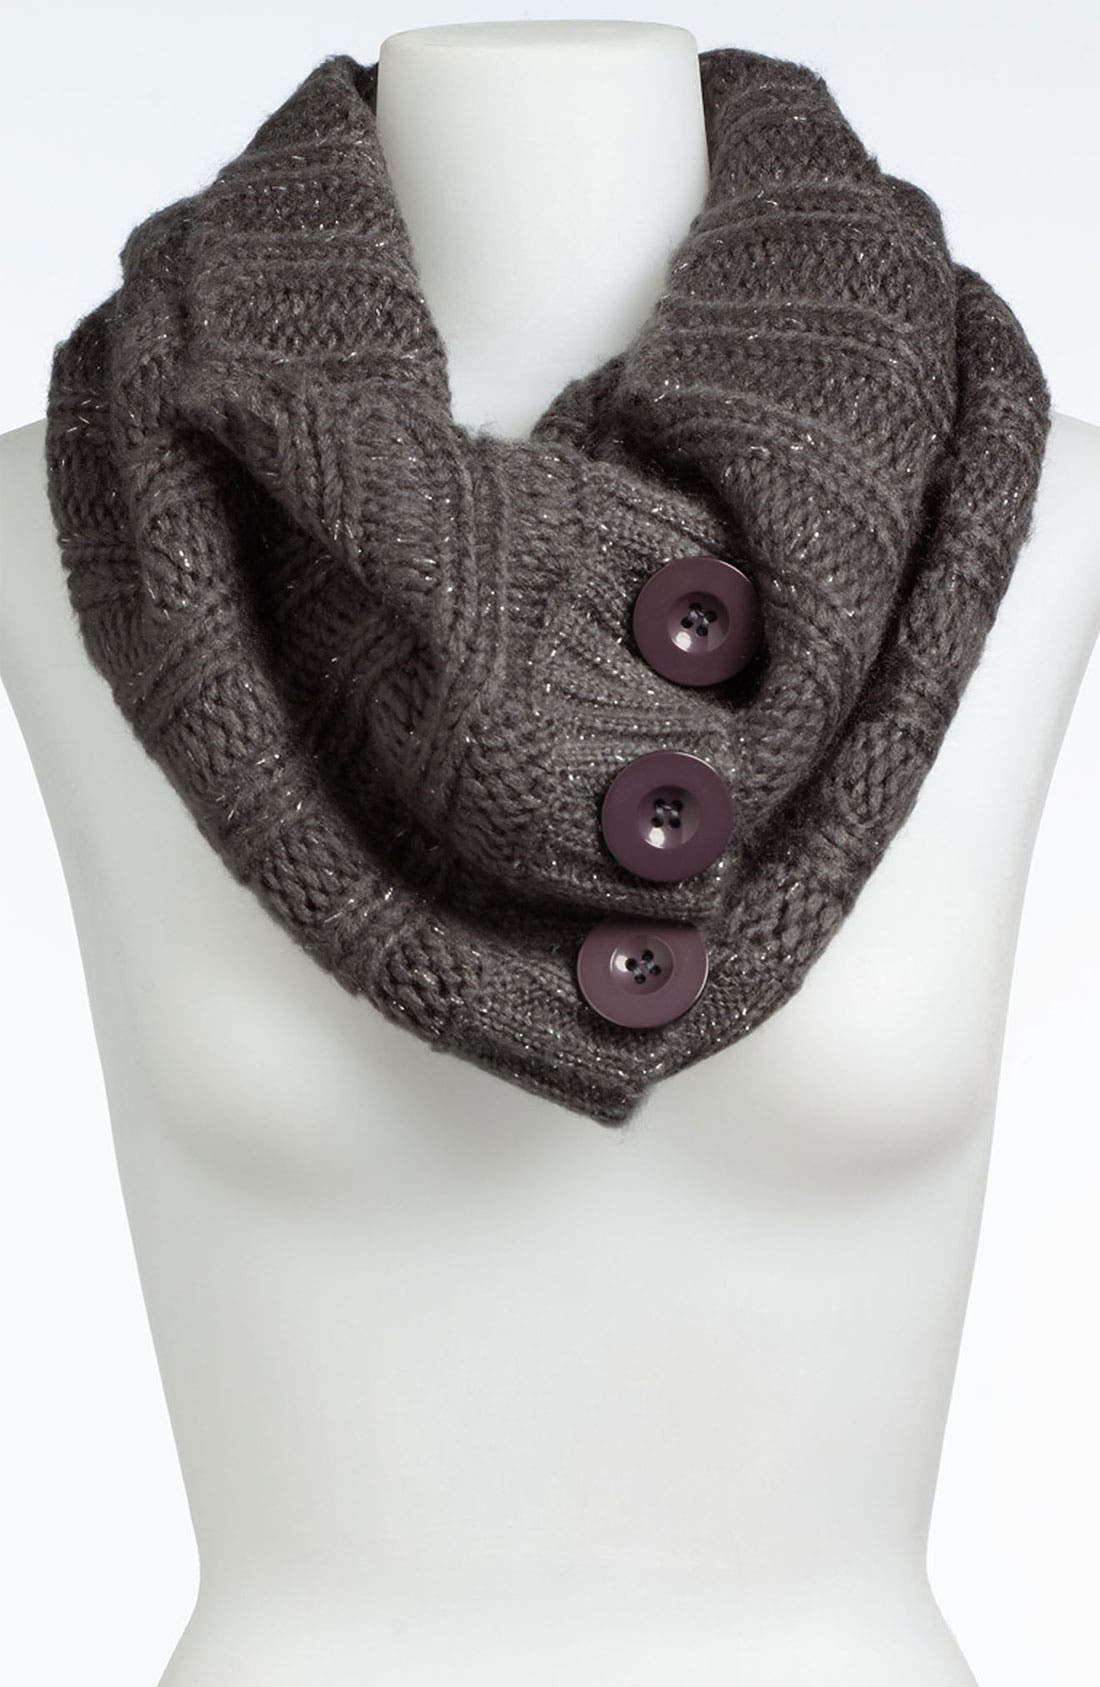 Main Image - Steve Madden 'Button Up' Infinity Scarf